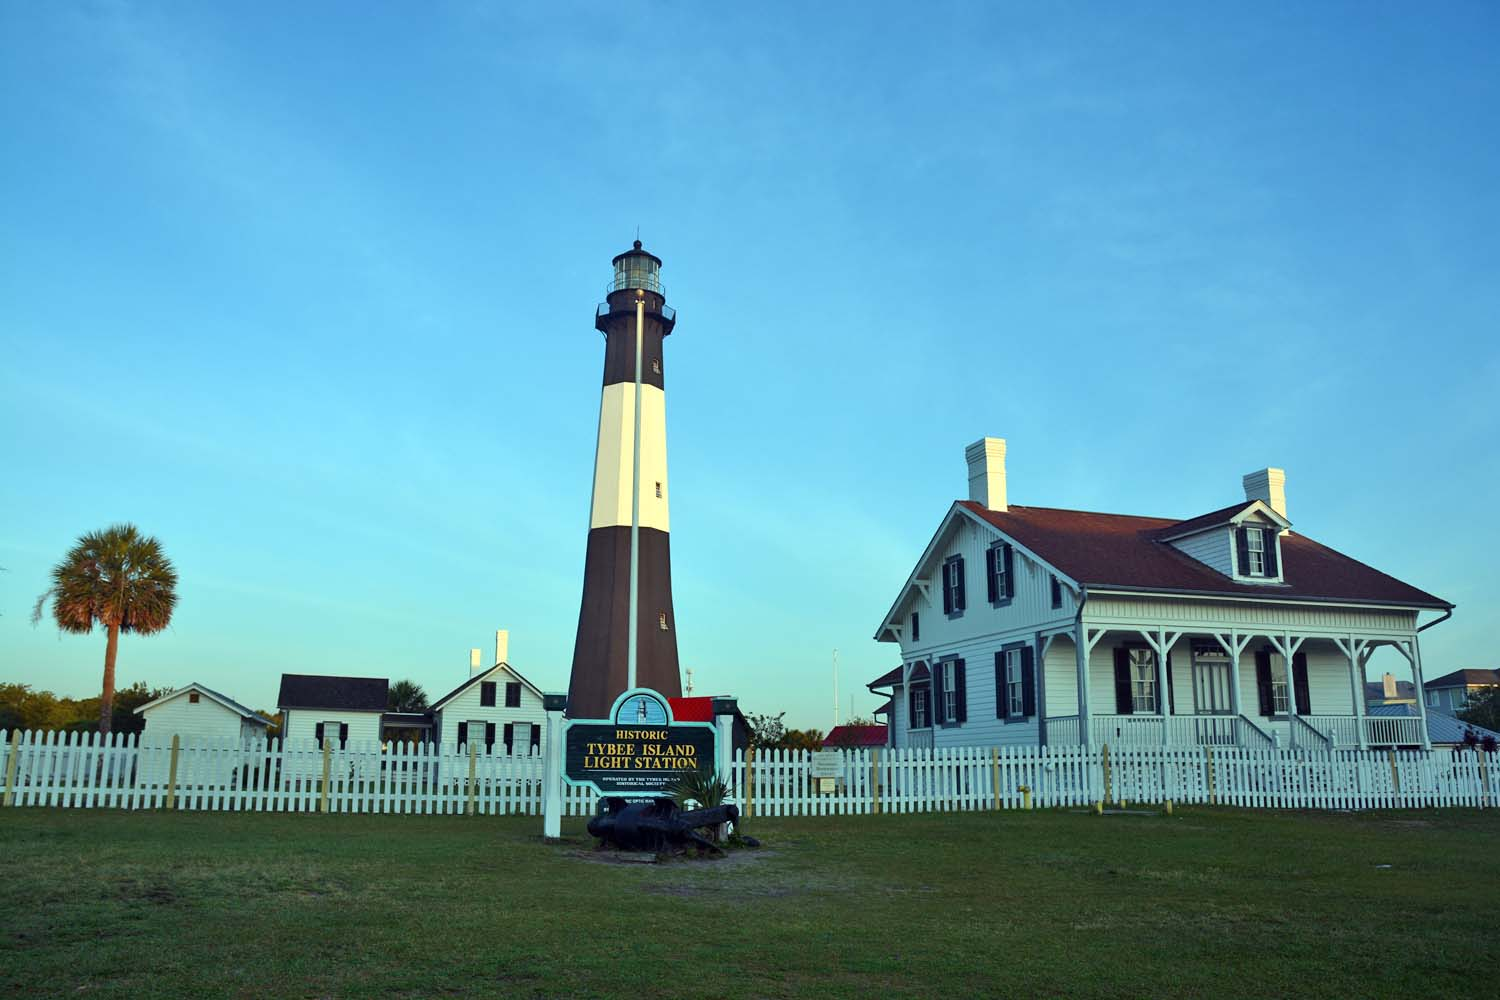 The Tybee Island Light Station